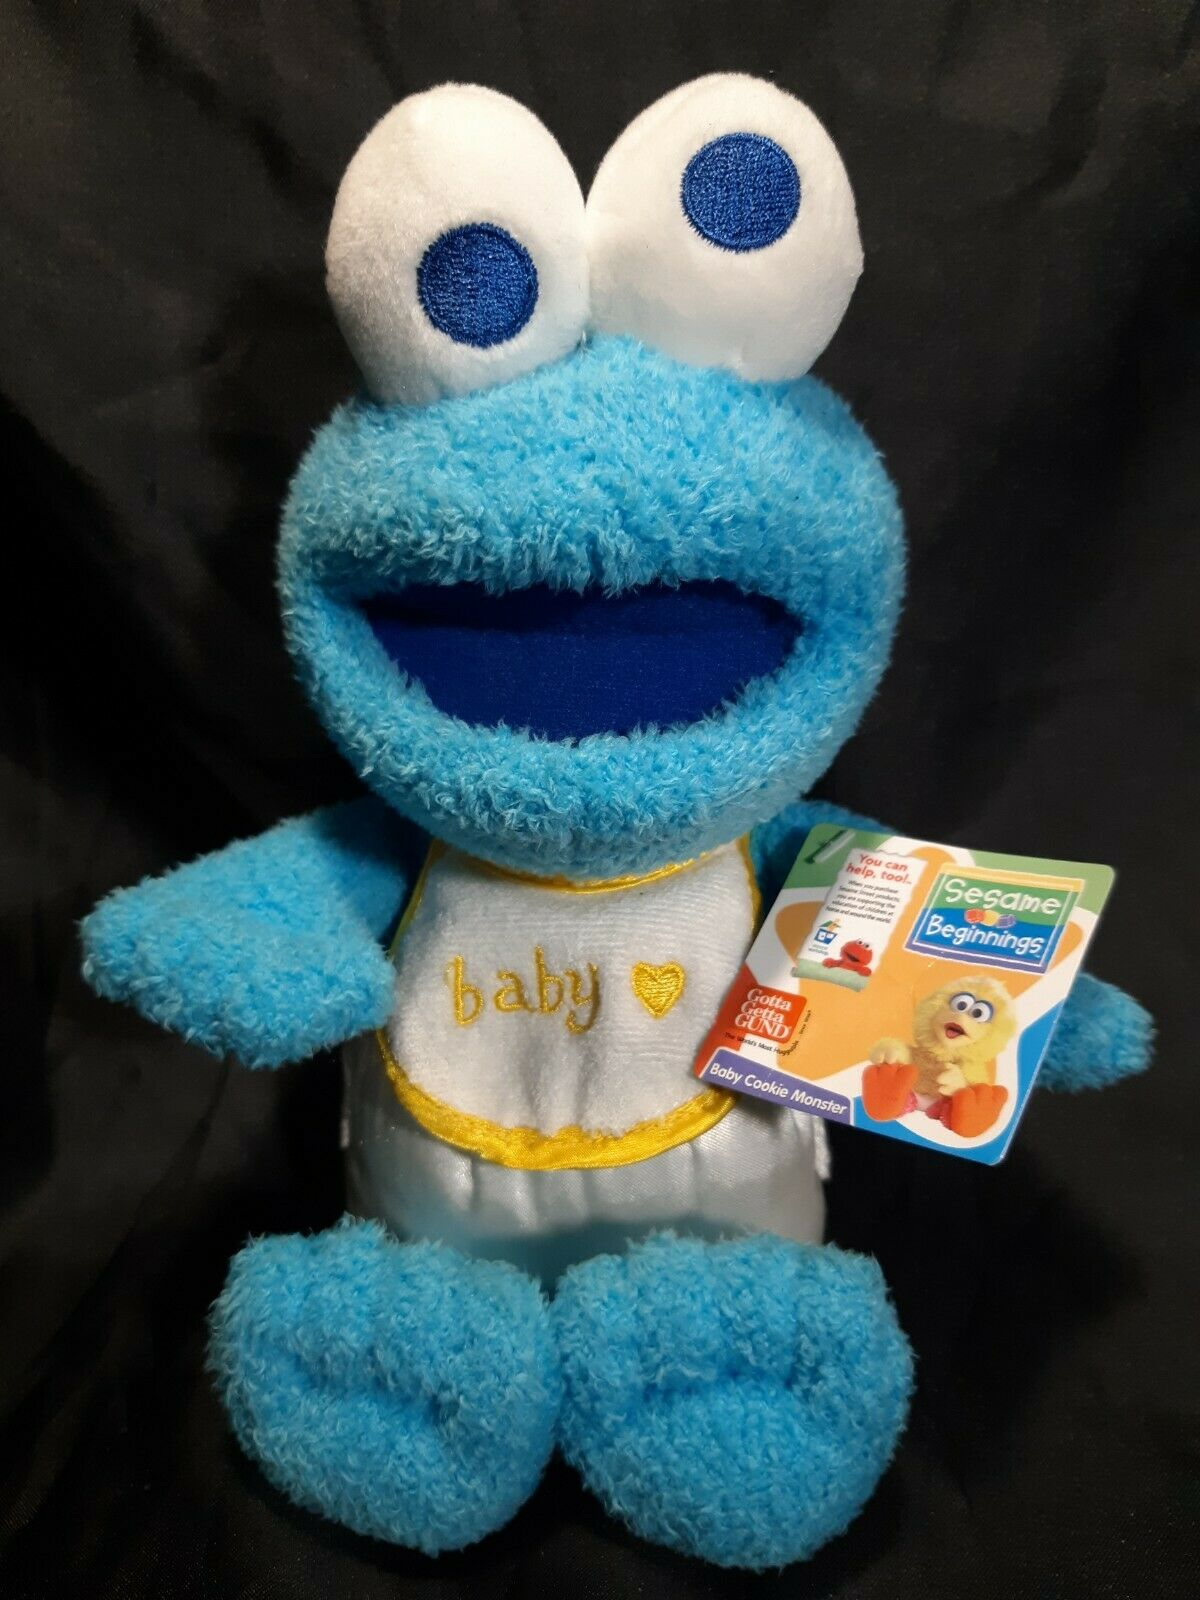 Nwt Gund Sesame Beginnings Baby Cookie Monster Plush 10 5 Free Shipping For Sale Online